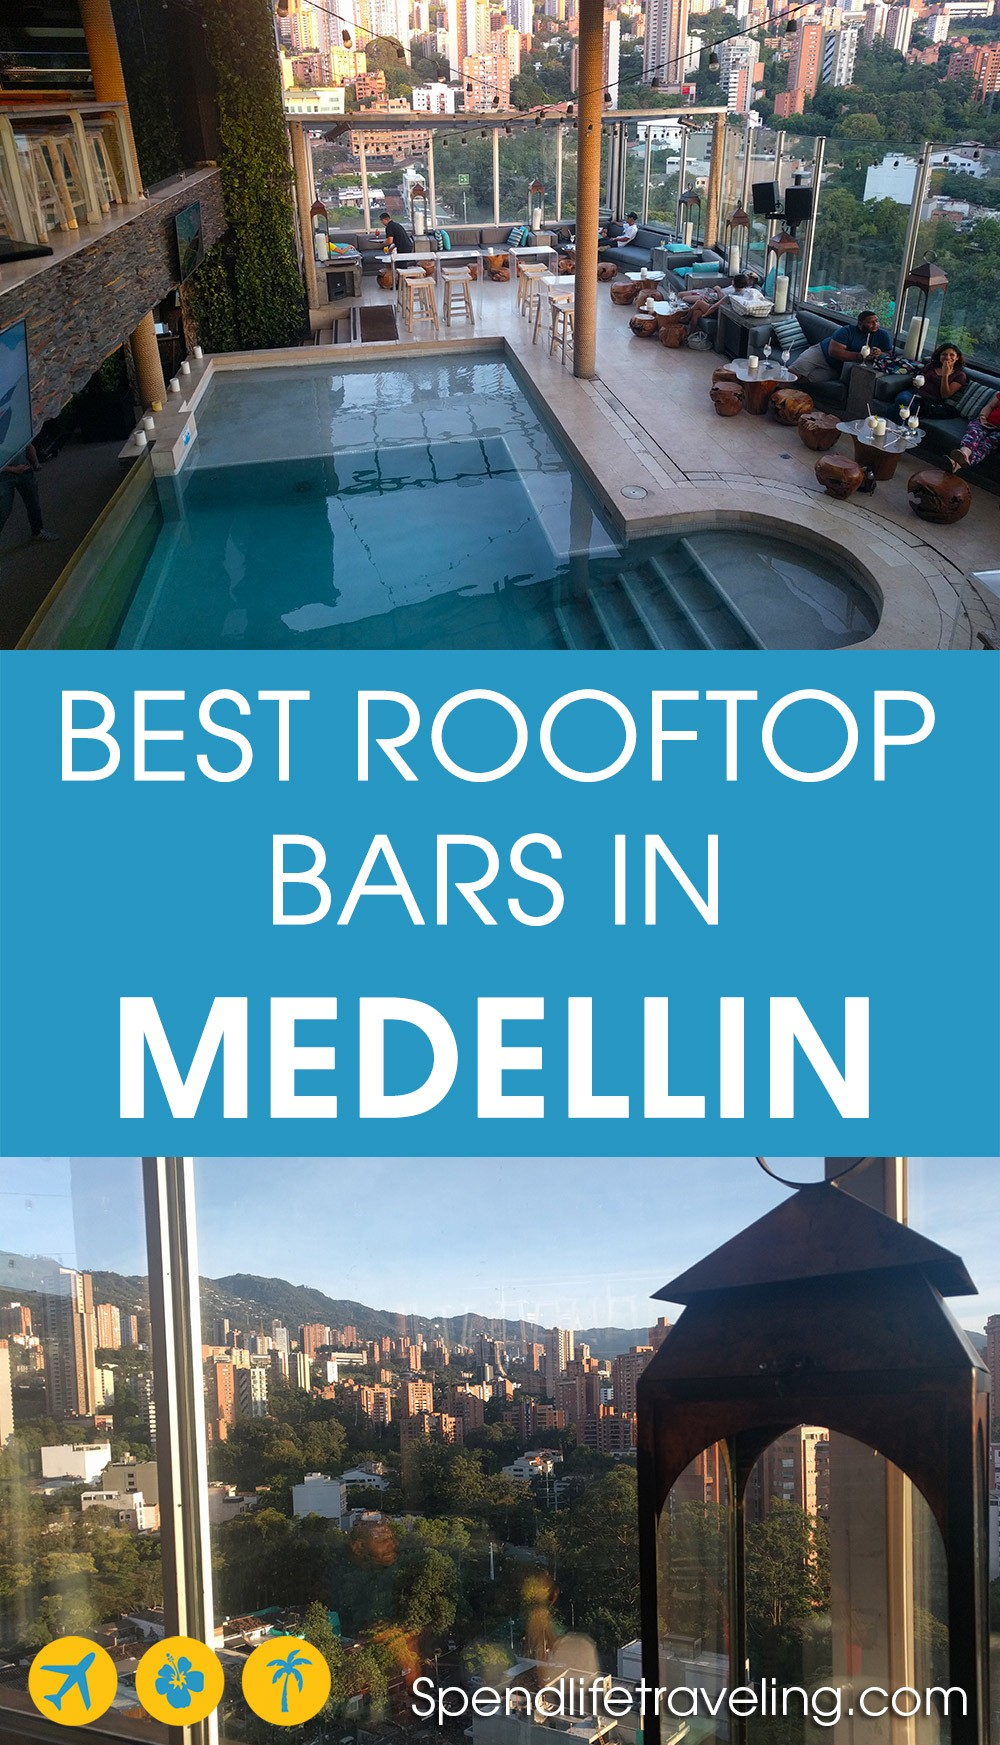 List of the best rooftop bars in Medellin, Colombia. Medellin, nicknamed City of Eternal Spring, is a perfect place to check out some great rooftop bars. From small, casual bars to trendy, upmarket venues and restaurants.